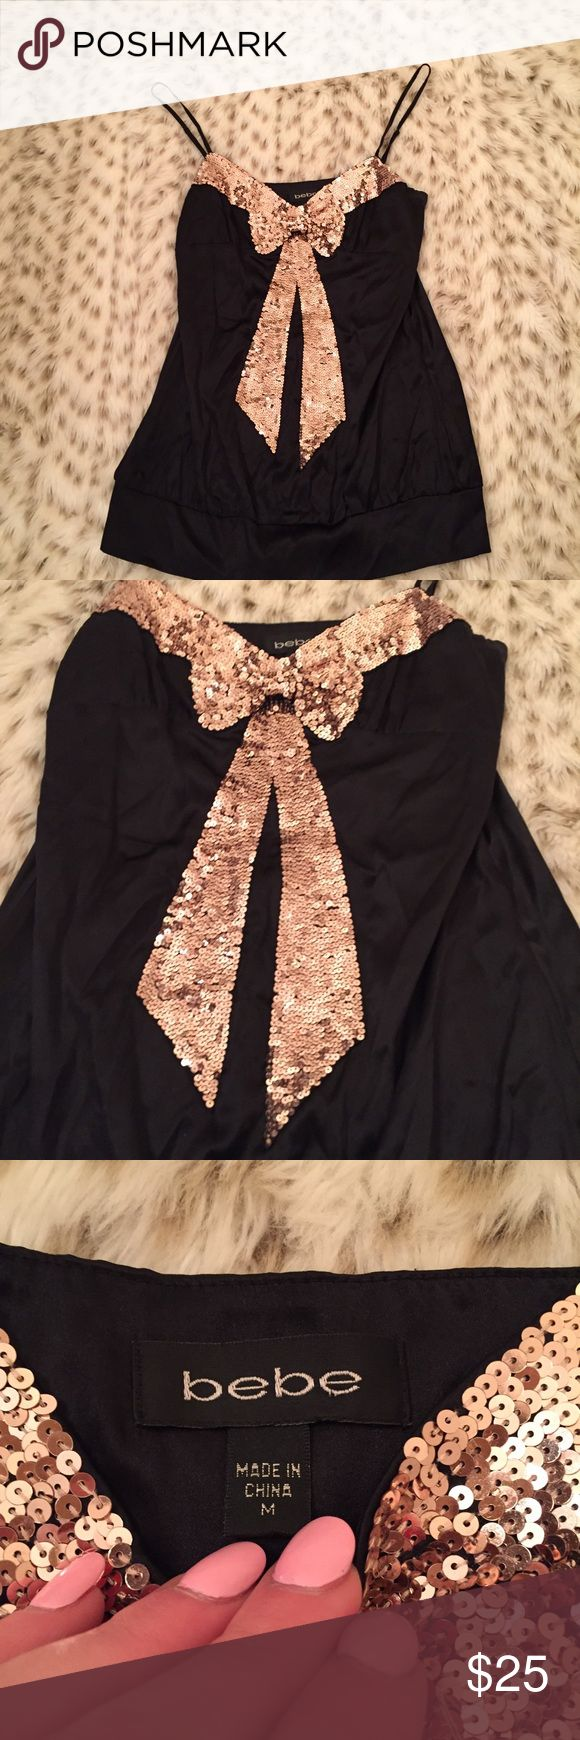 Bebe Silk Sequin Bow Tank Top Bebe size medium black silk tank top with rose gold sequin bow! Gorgeous and so silky soft! Silk blend with spandex! Worn only a handful of times! Excellent used condition! bebe Tops Tank Tops